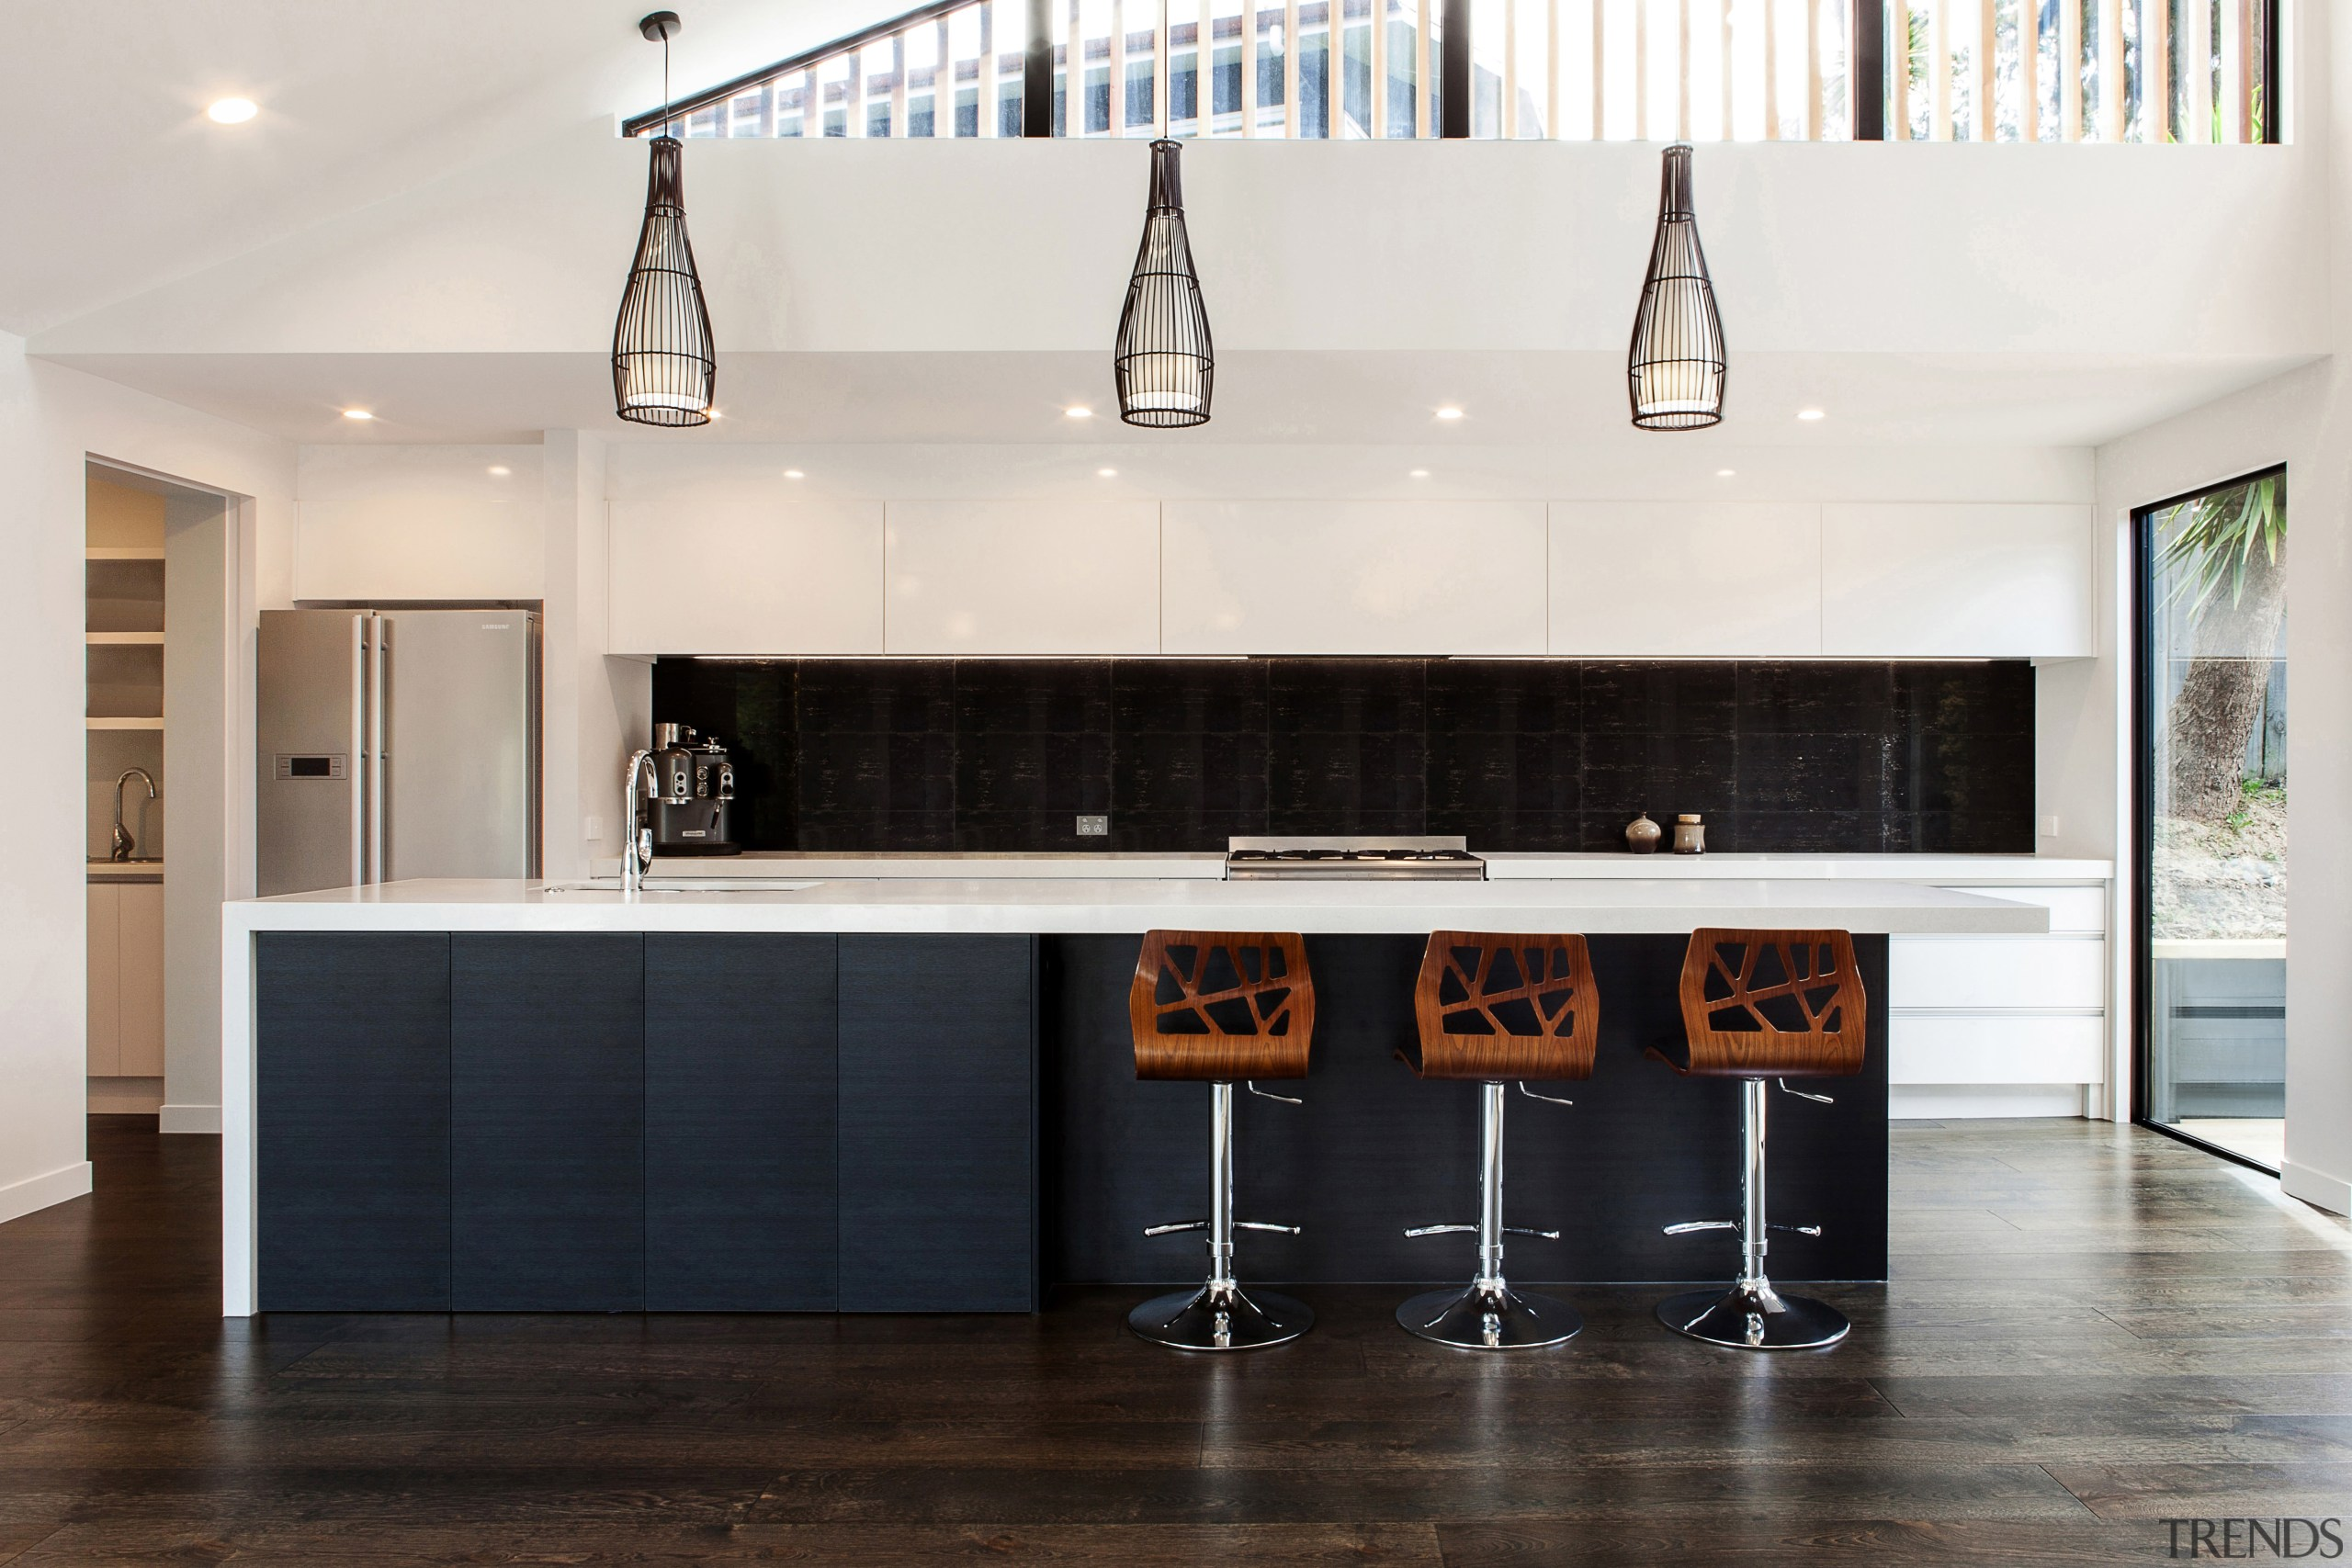 Dark wood veneer contrasts high-gloss white lacquer in cabinetry, countertop, cuisine classique, floor, flooring, furniture, interior design, kitchen, room, white, black